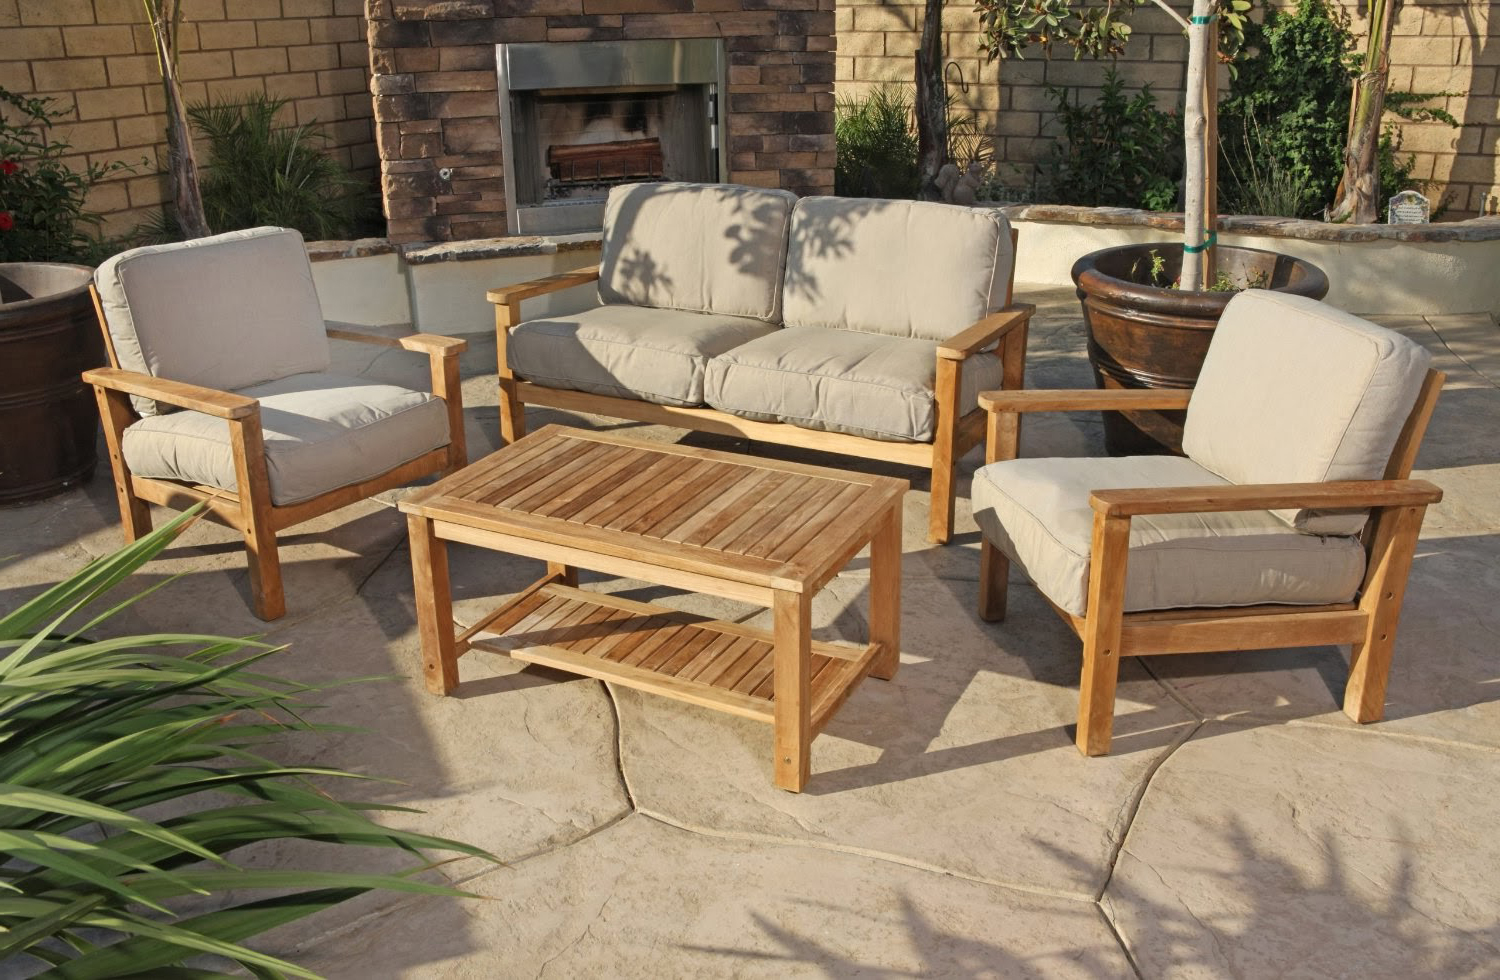 teak-patio-furniture-quinju.com - quinju.com